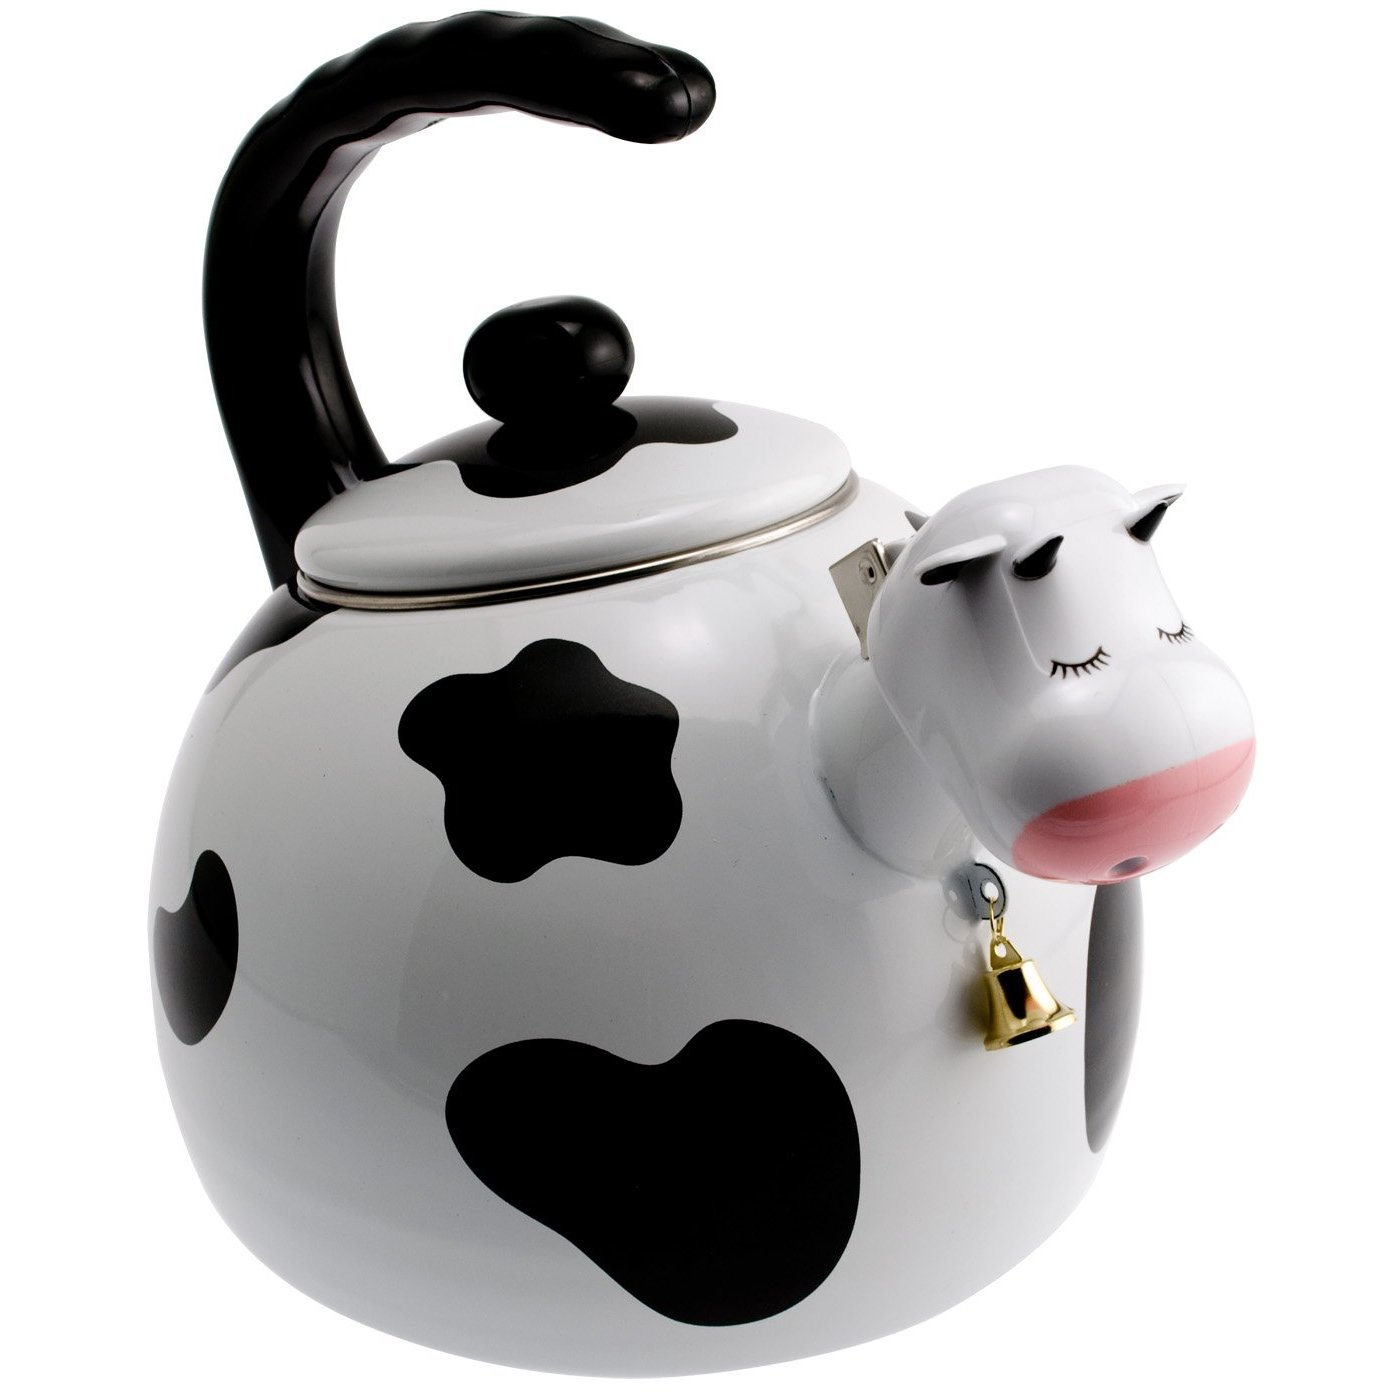 Cow Print Kitchen Decor Unique Novelty Gifts